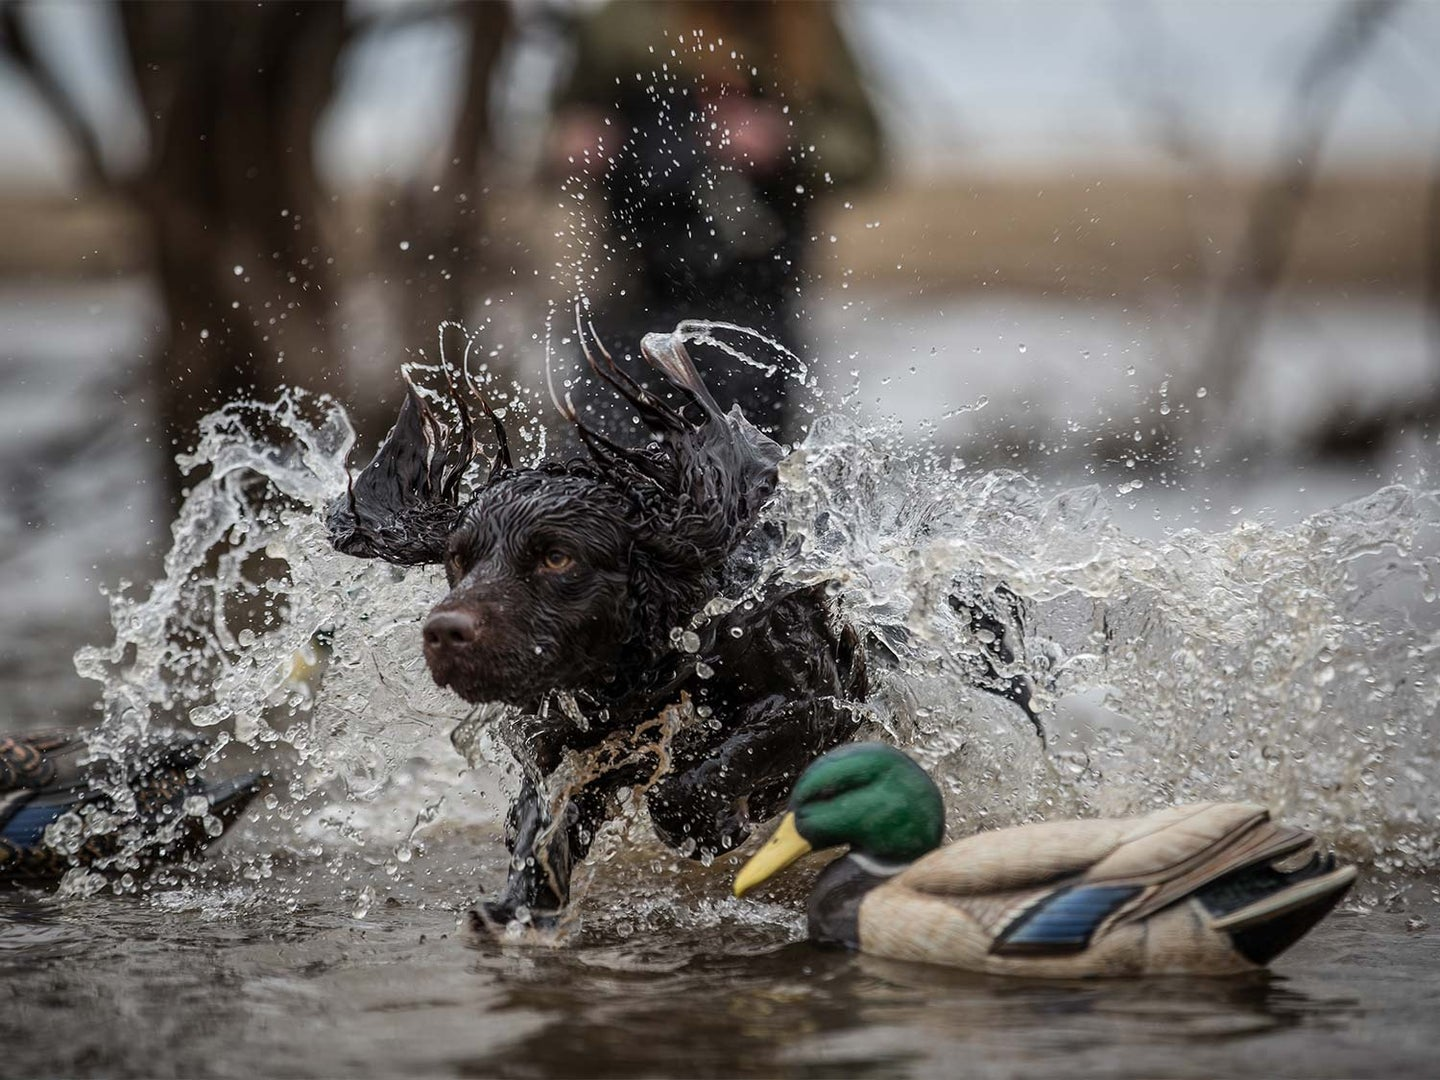 A hunting dog splashing in the water on a retrieve.